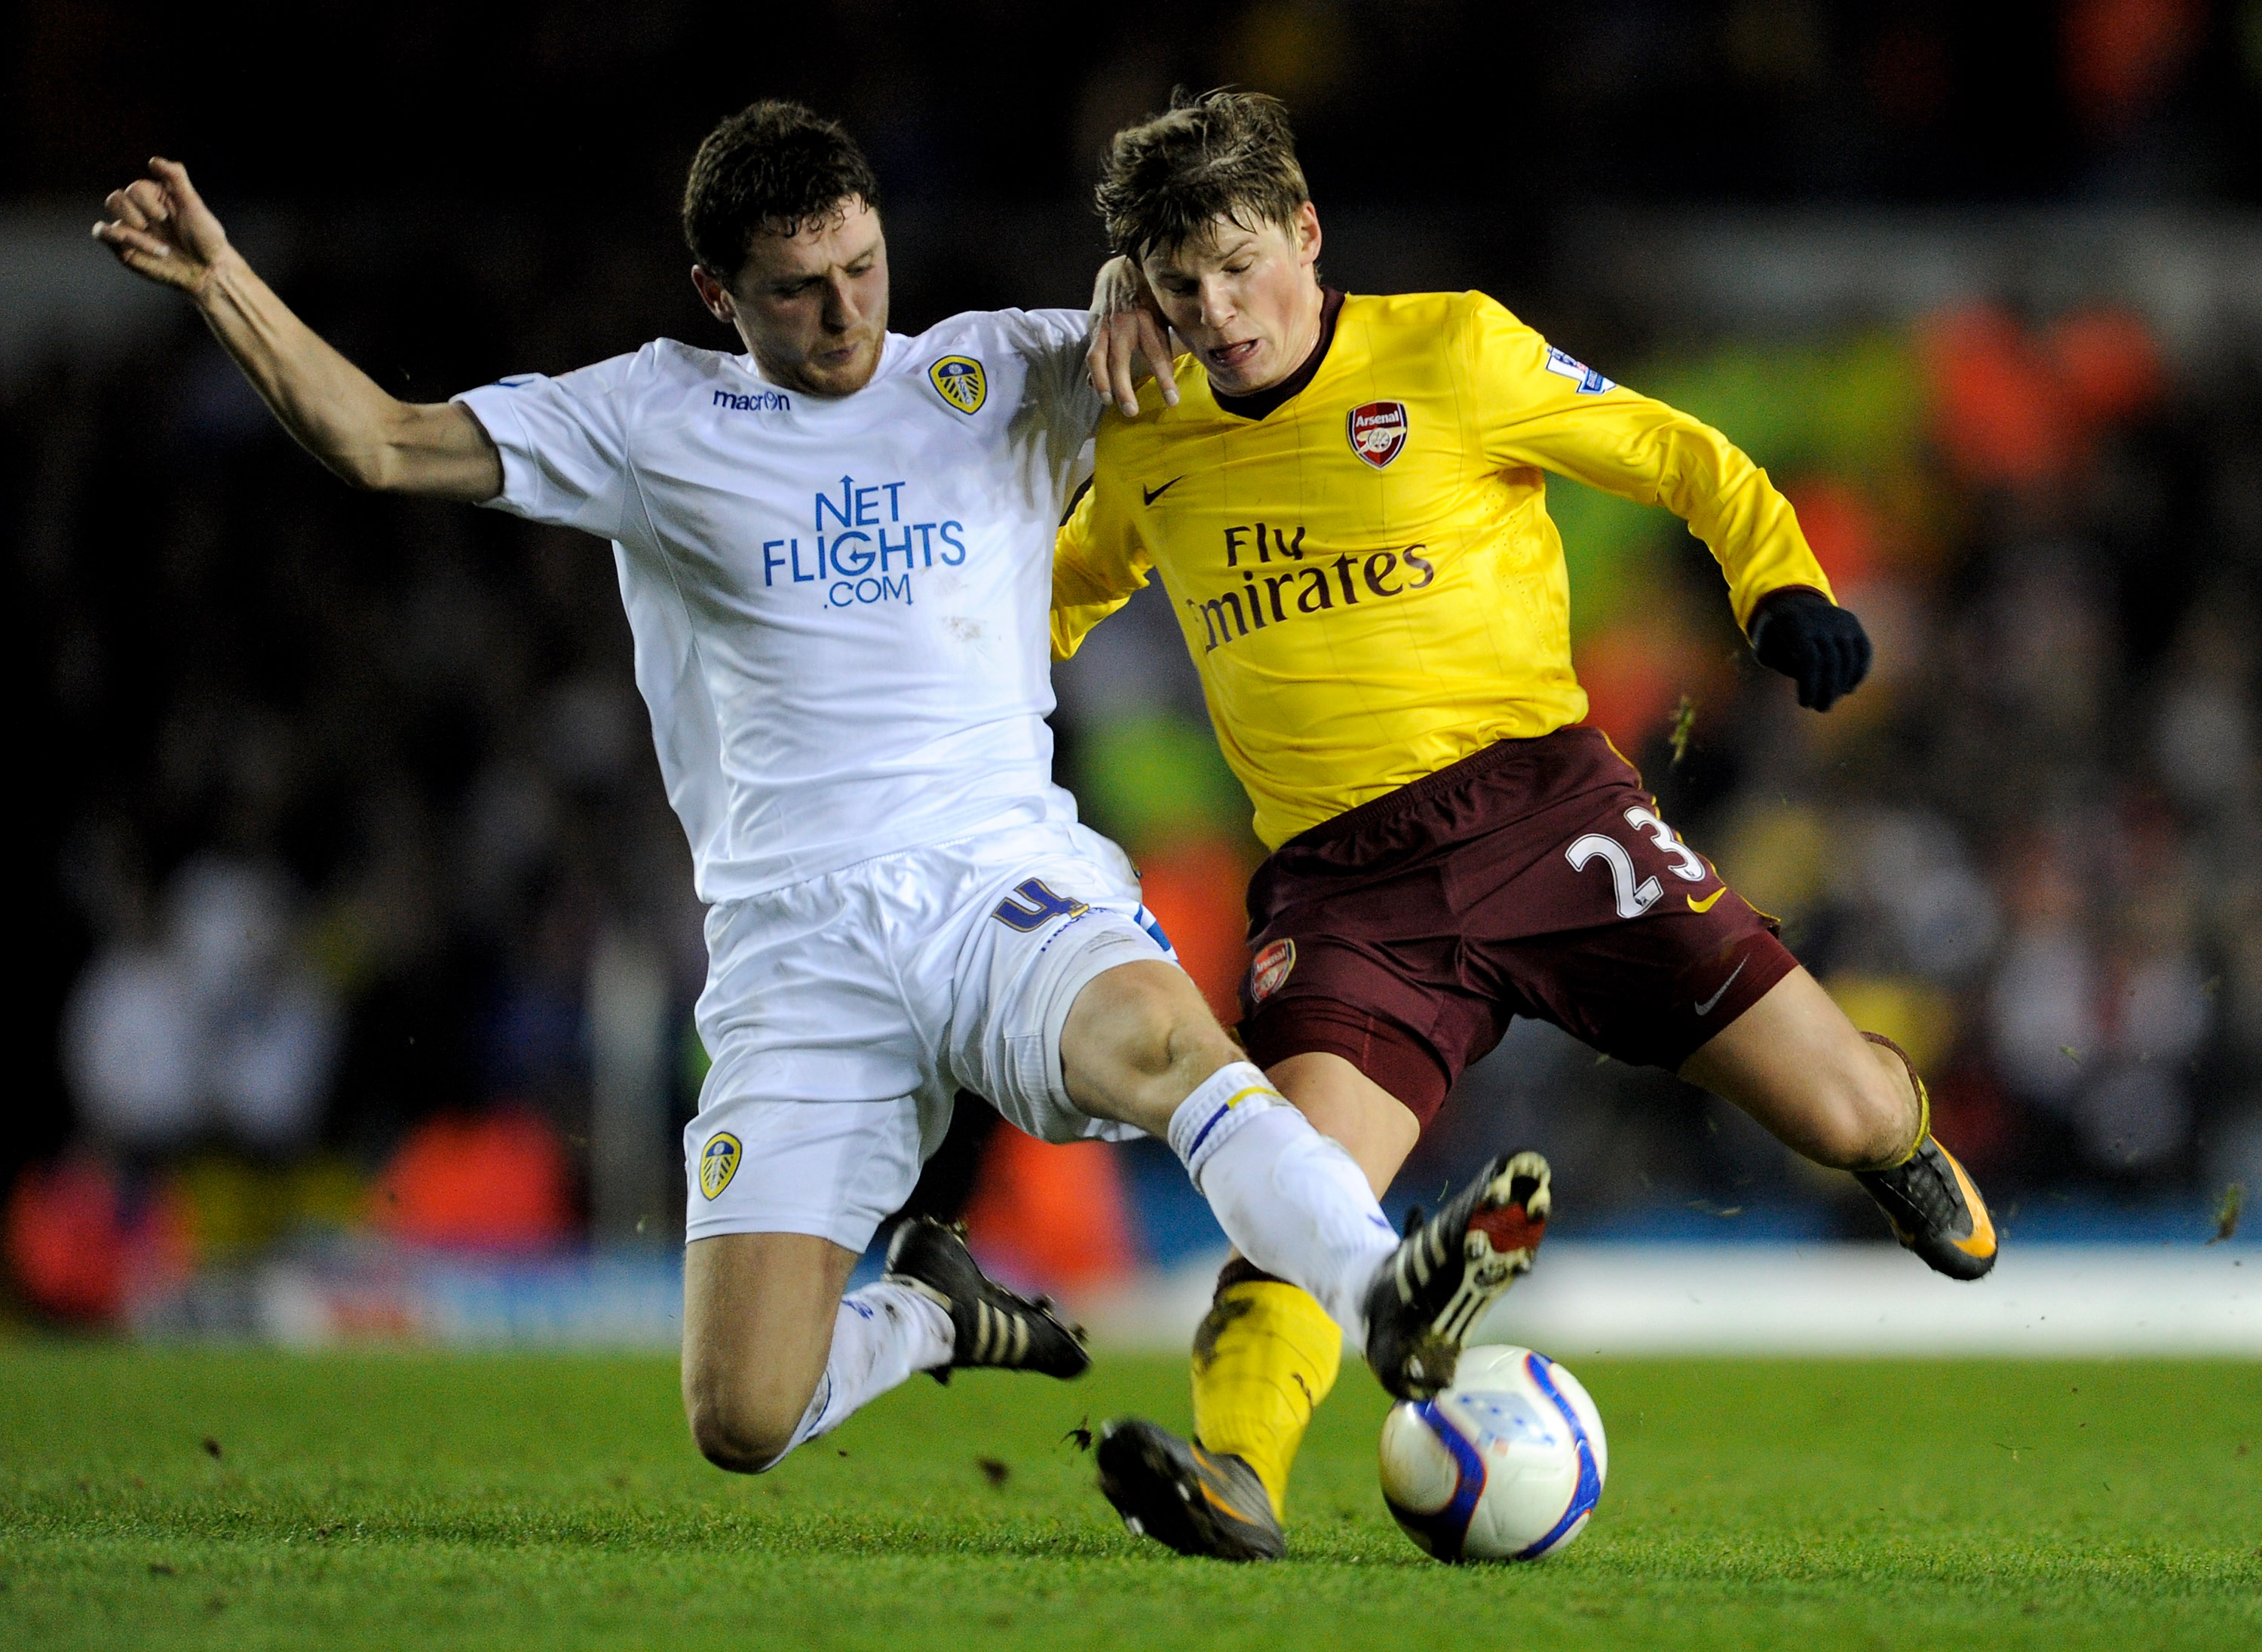 LEEDS, ENGLAND - JANUARY 19: Alex Bruce of Leeds United challenges Andrey Arshavin of Arsenal during the FA Cup sponsored by E.On Third Round Replay match between Leeds United and Arsenal at Elland Road on January 19, 2011 in Leeds, England. (Photo by Mic